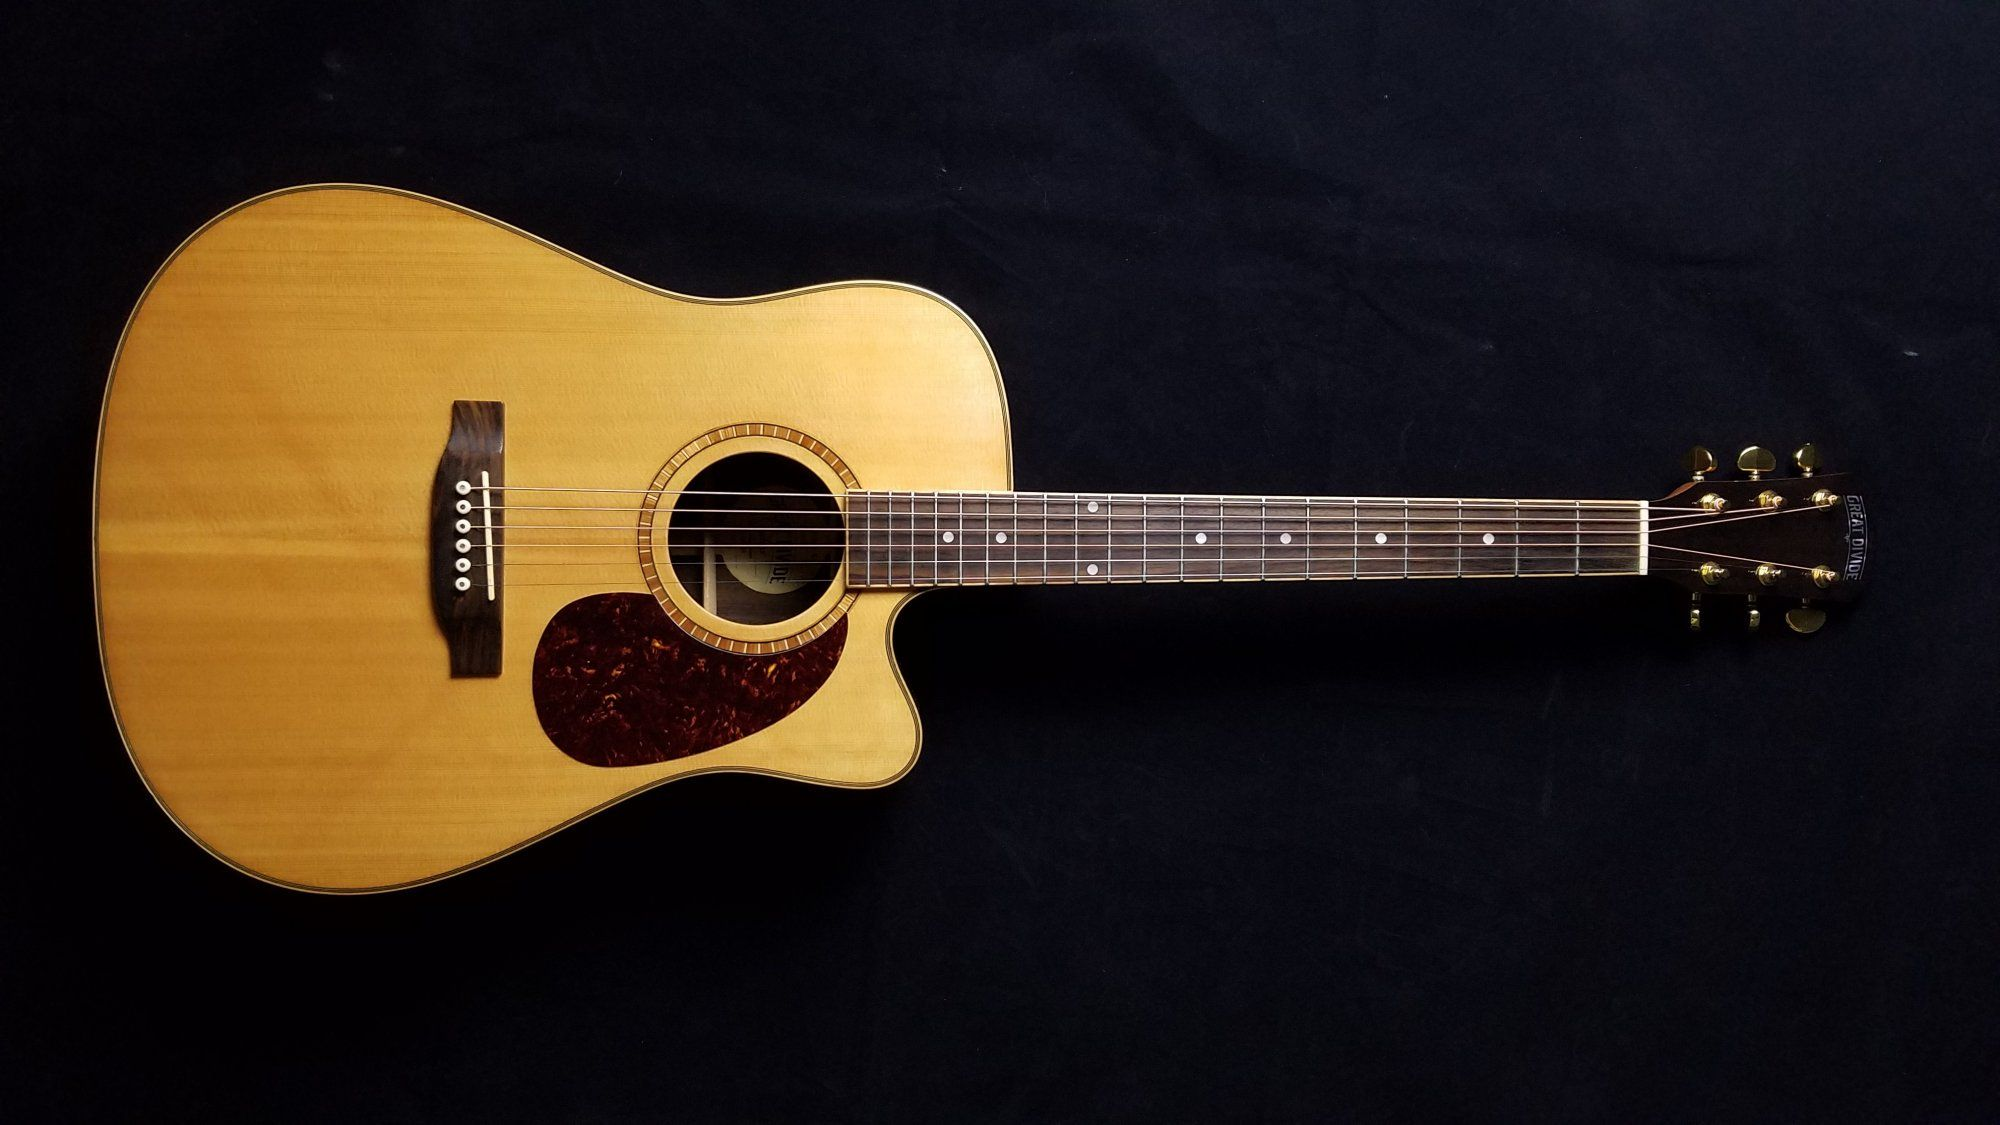 Used Great Divide Sgd28ceg Acoustic Electric Guitar With Bag 225 Acoustic Electric Guitar Guitar Acoustic Electric